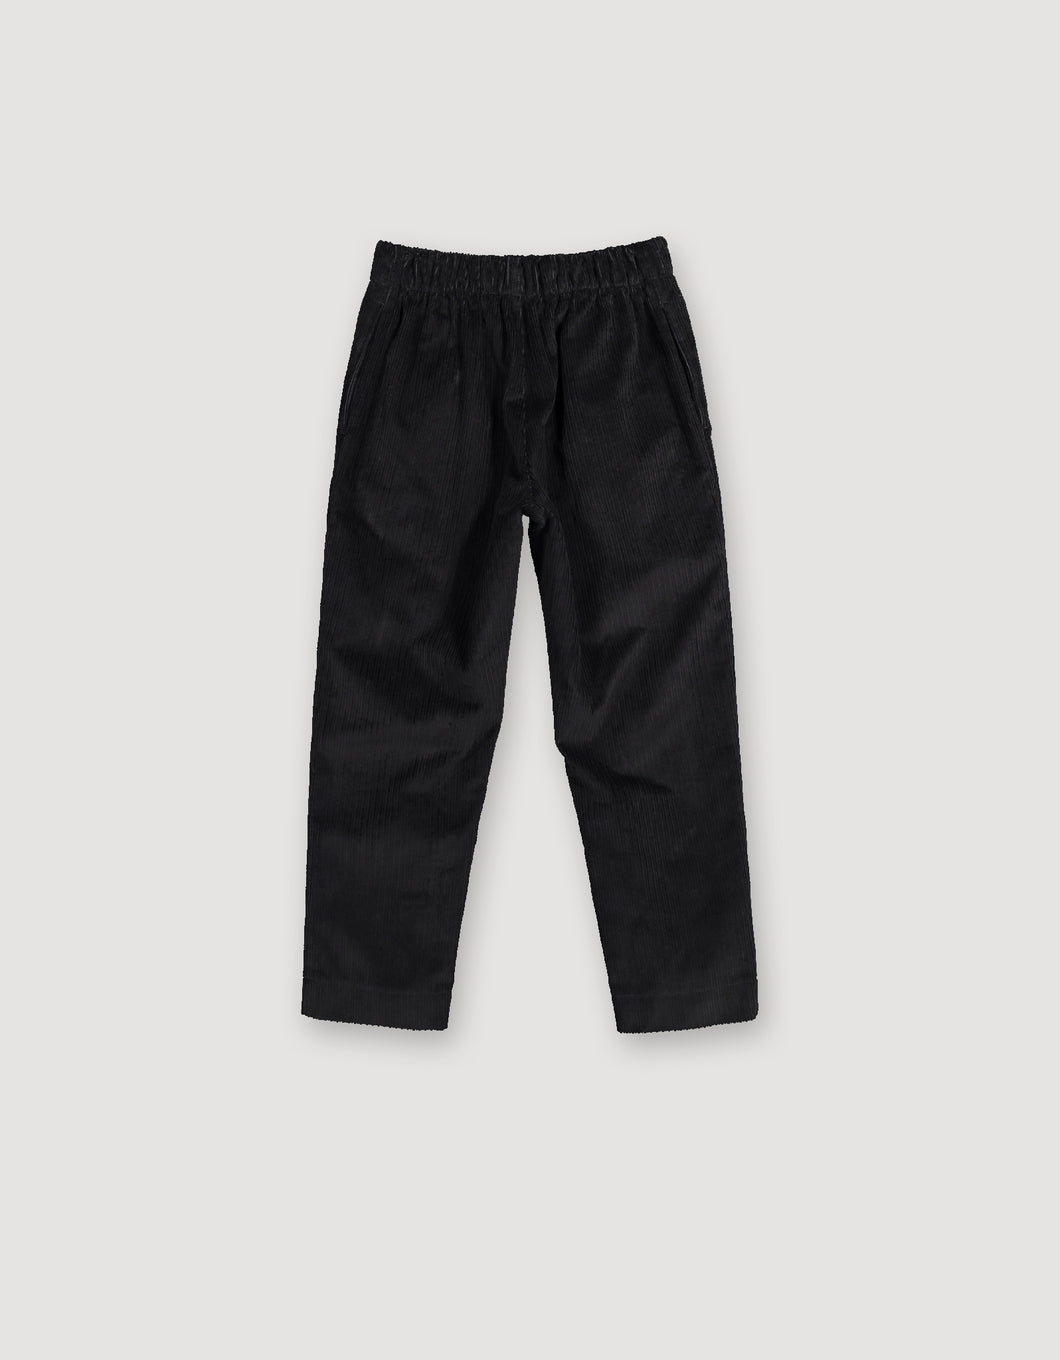 CORDUROY TAPERED TROUSERS (BLACK)